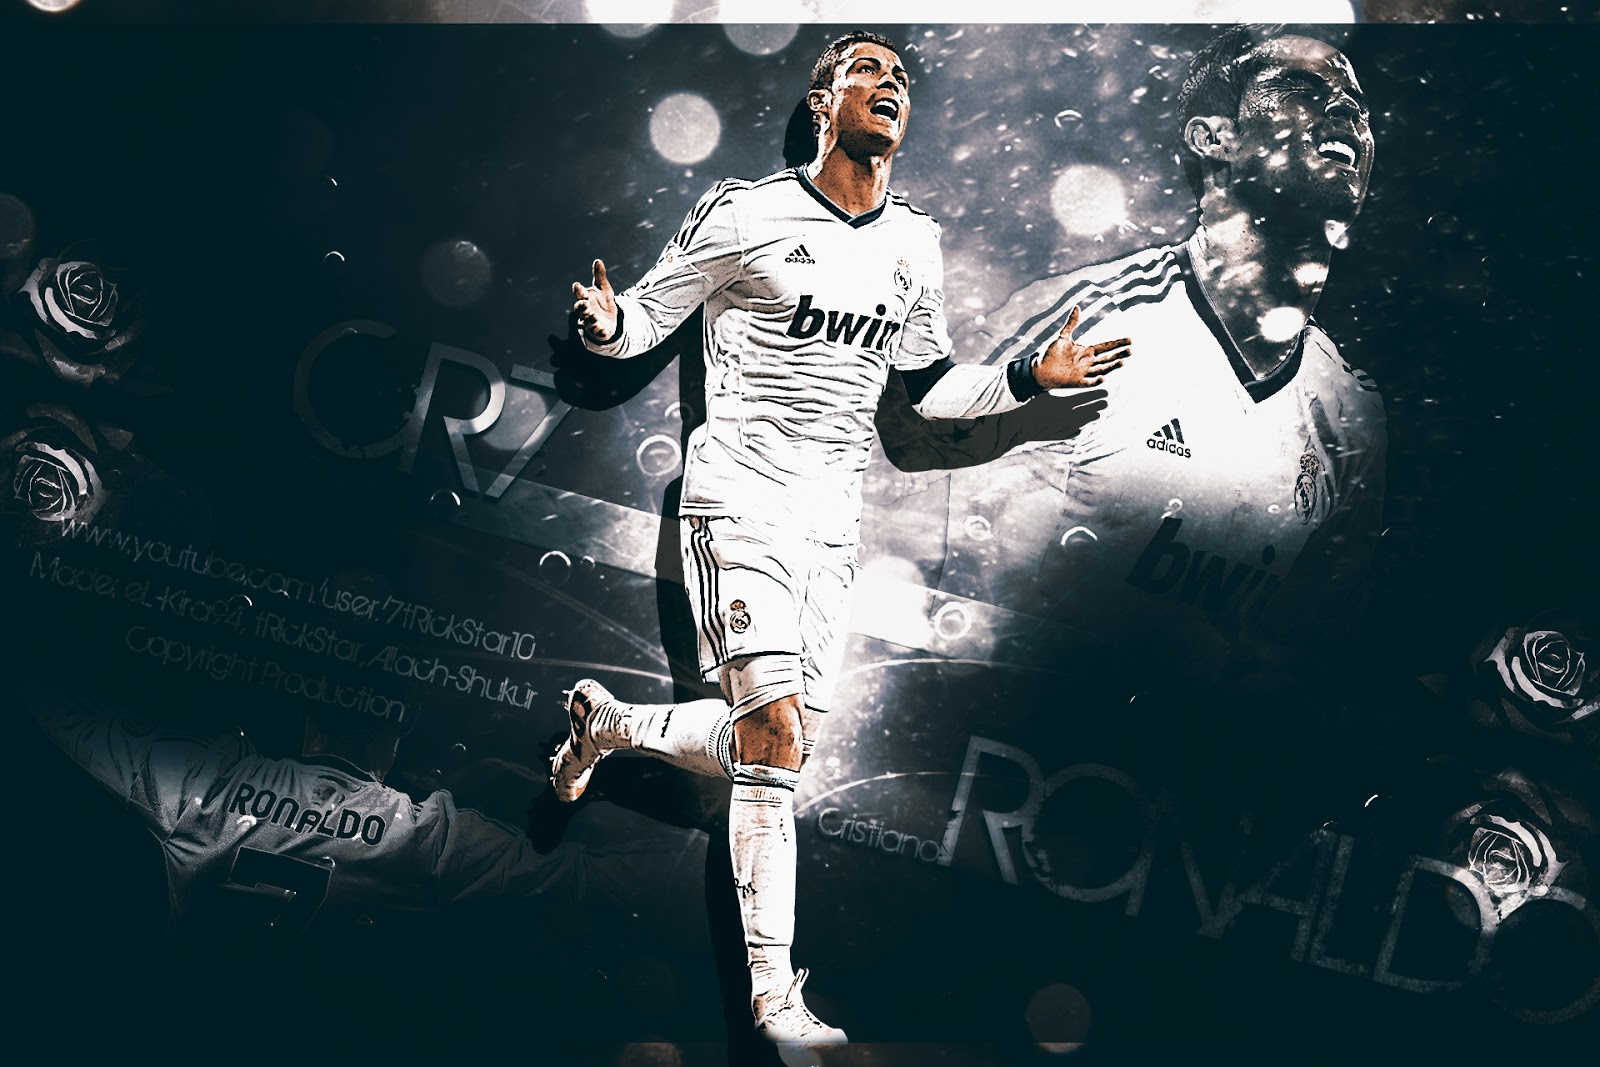 Cristiano Ronaldo New HD Wallpapers 2014 2015 Football Wallpapers HD 1600x1067